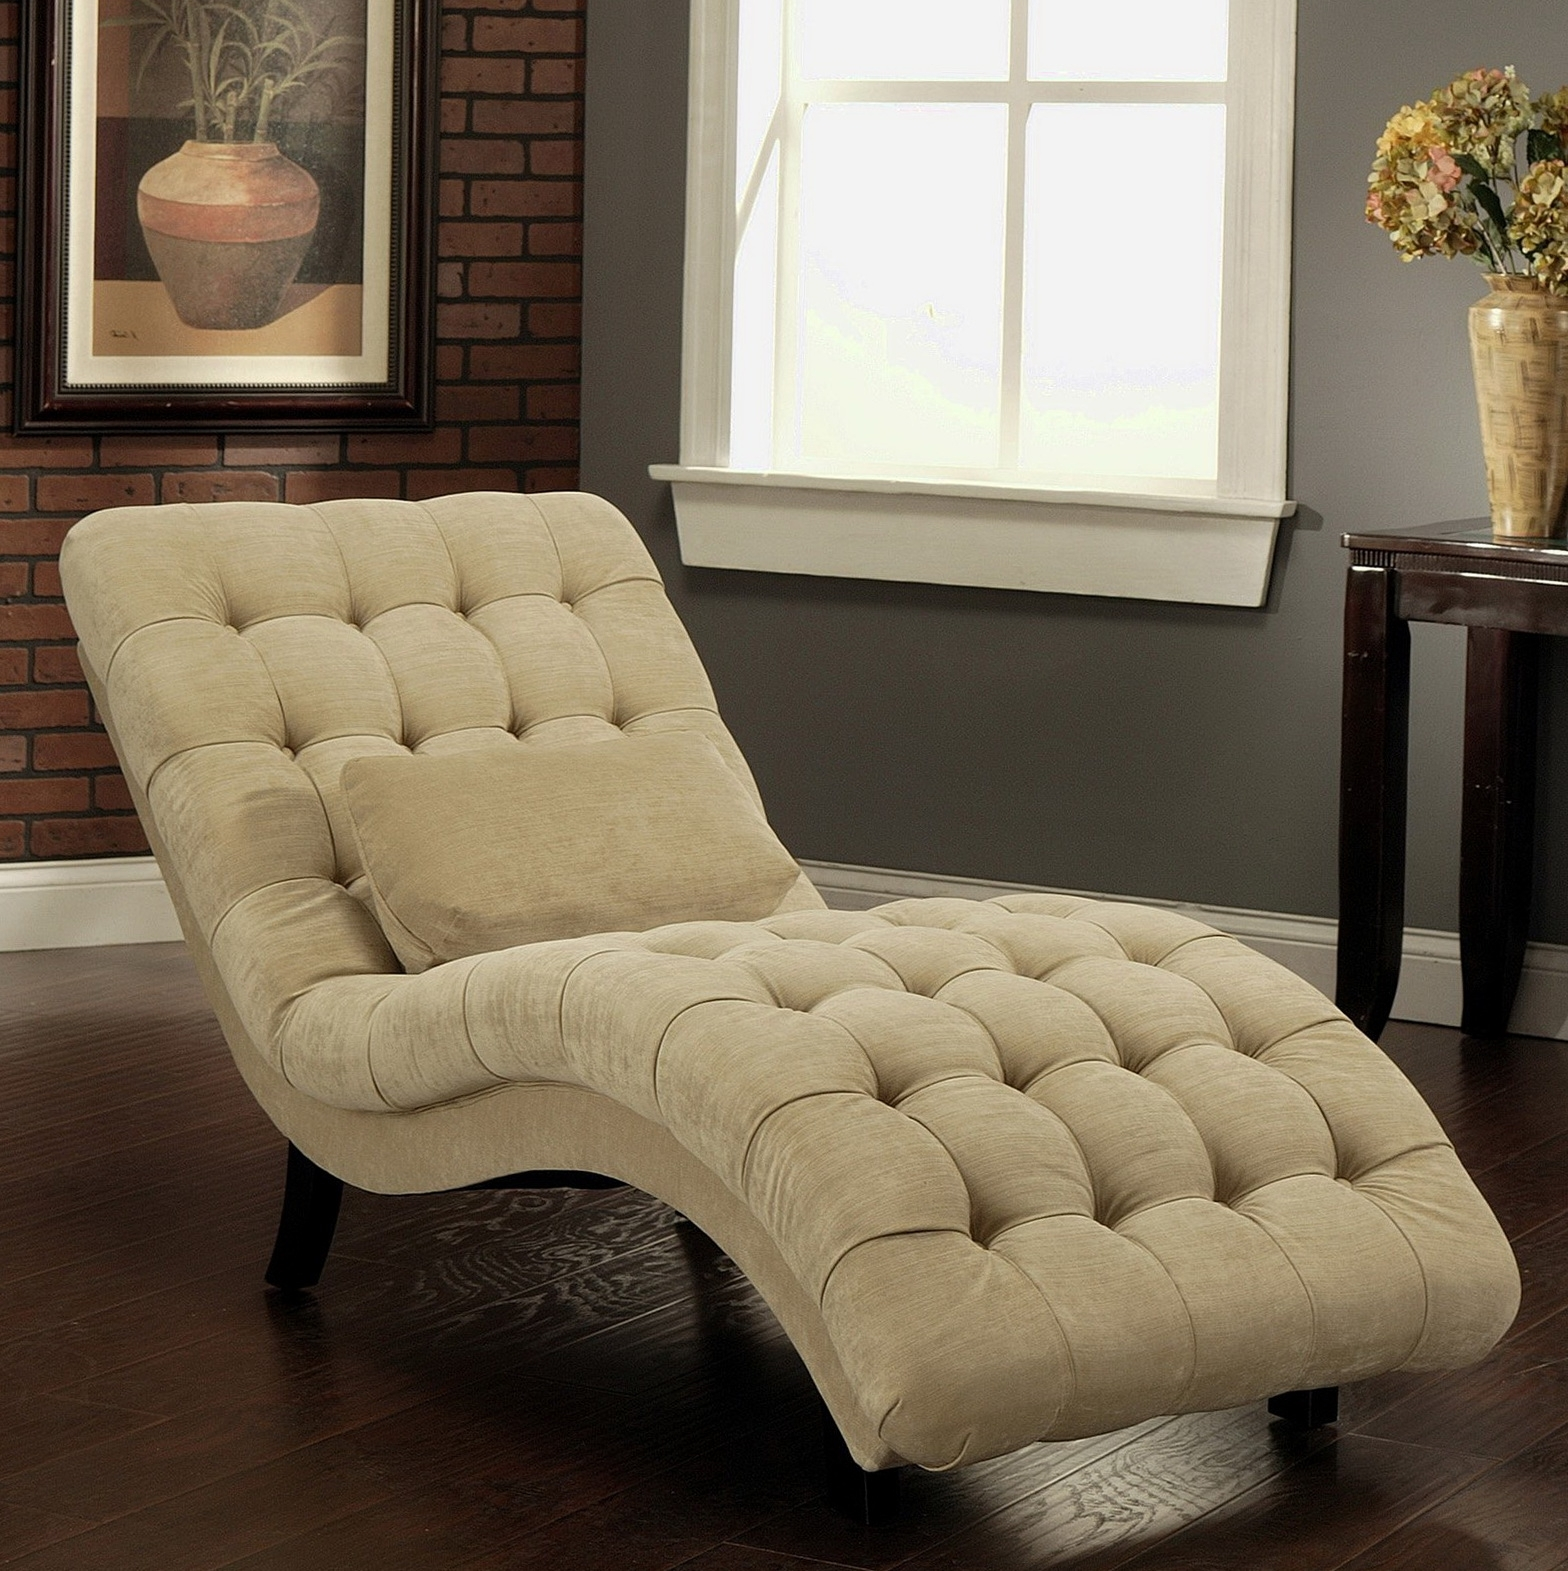 Costco Furniture Kirkland: 15 The Best Costco Chaise Lounges